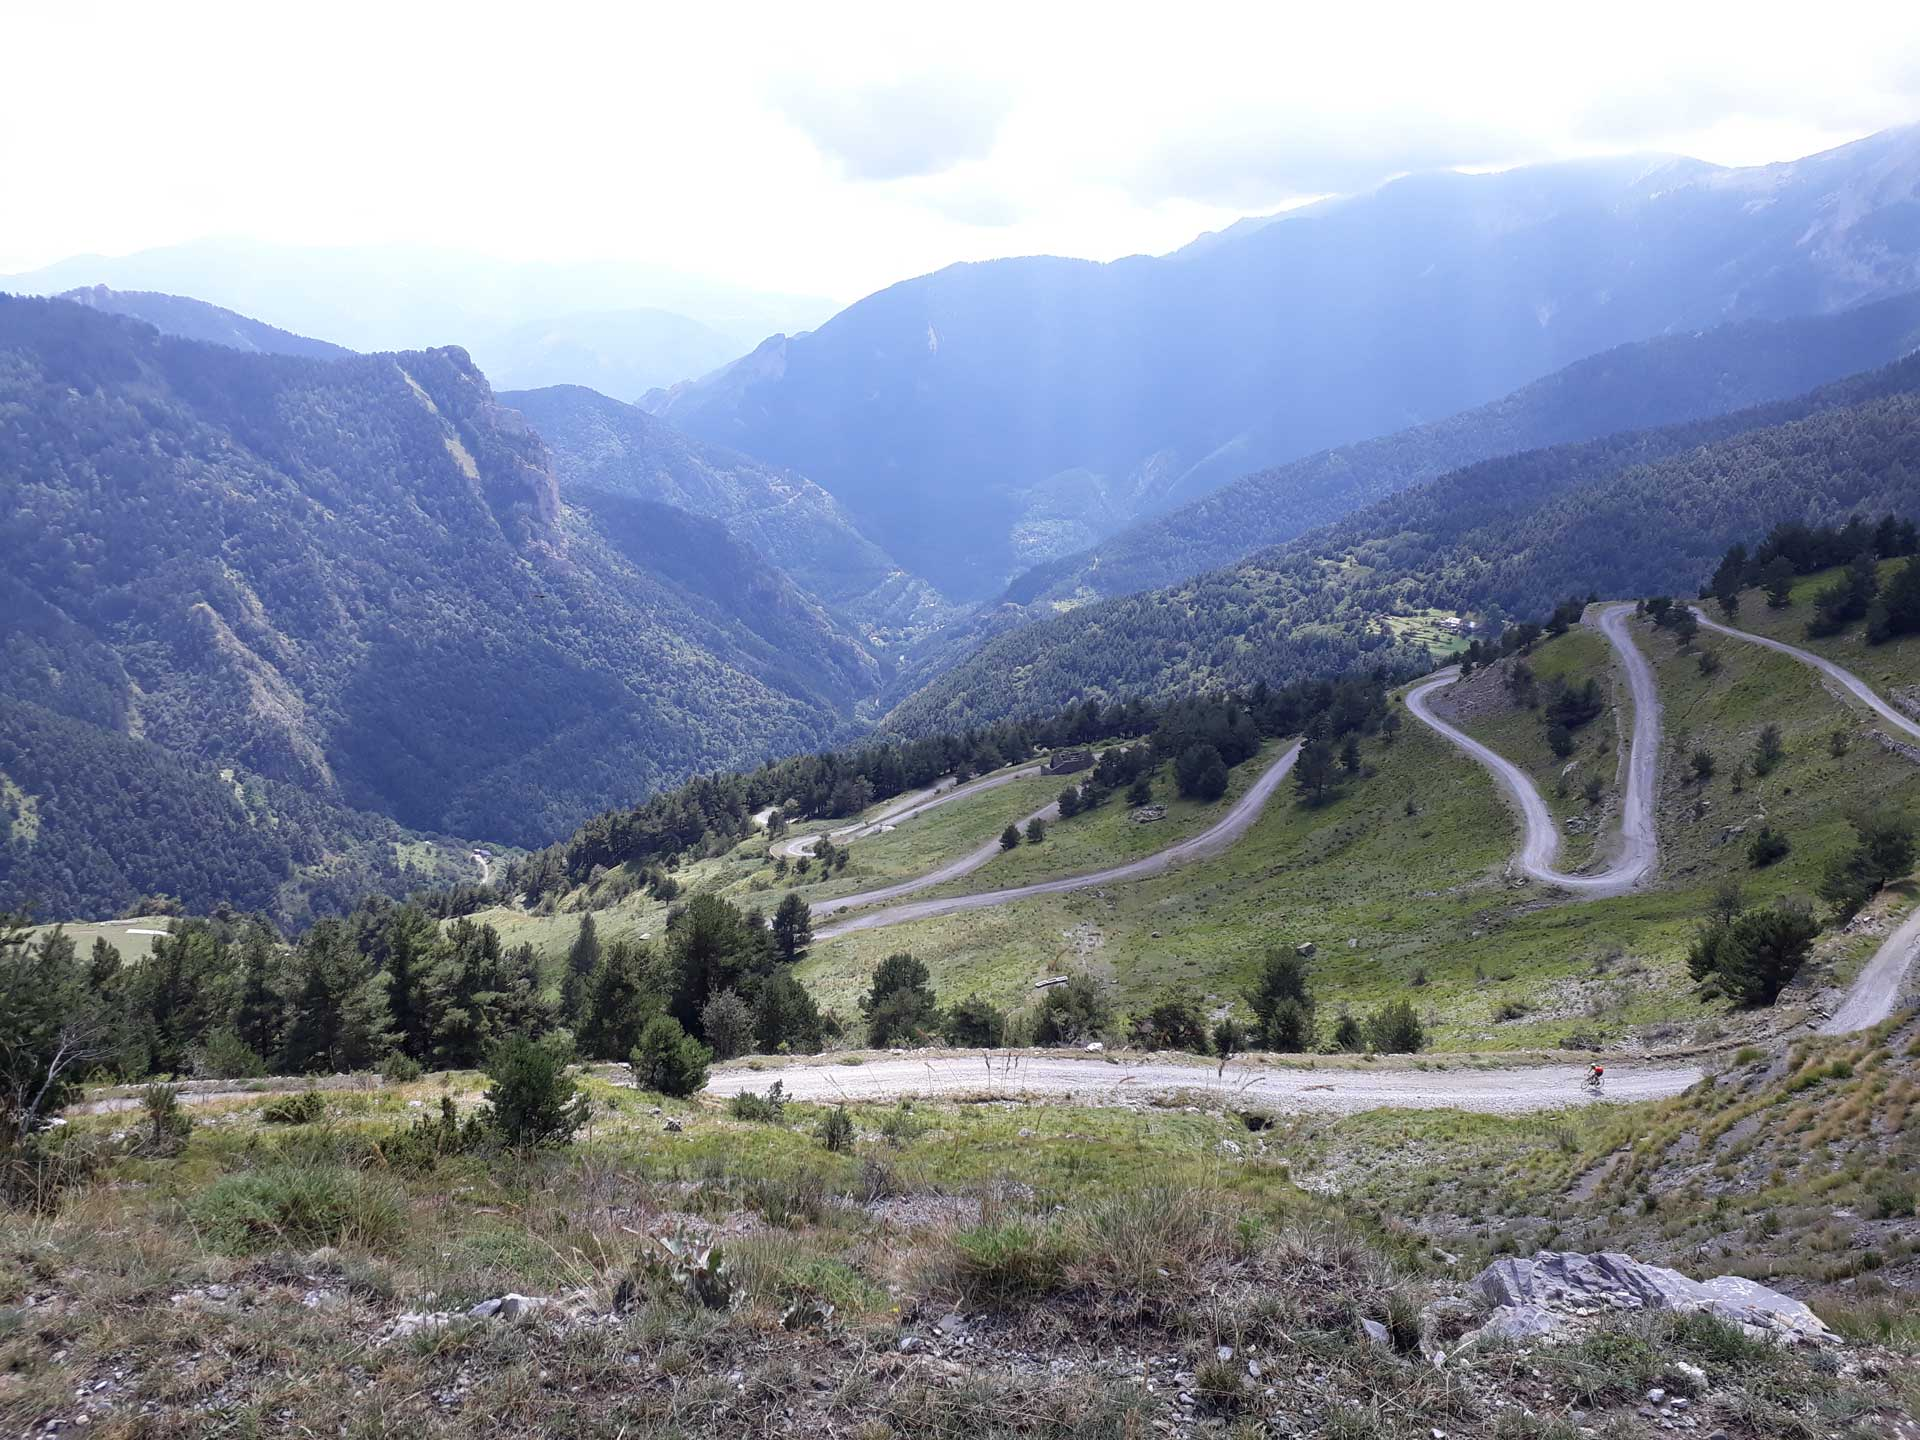 With the racing bike over the Col de Tende